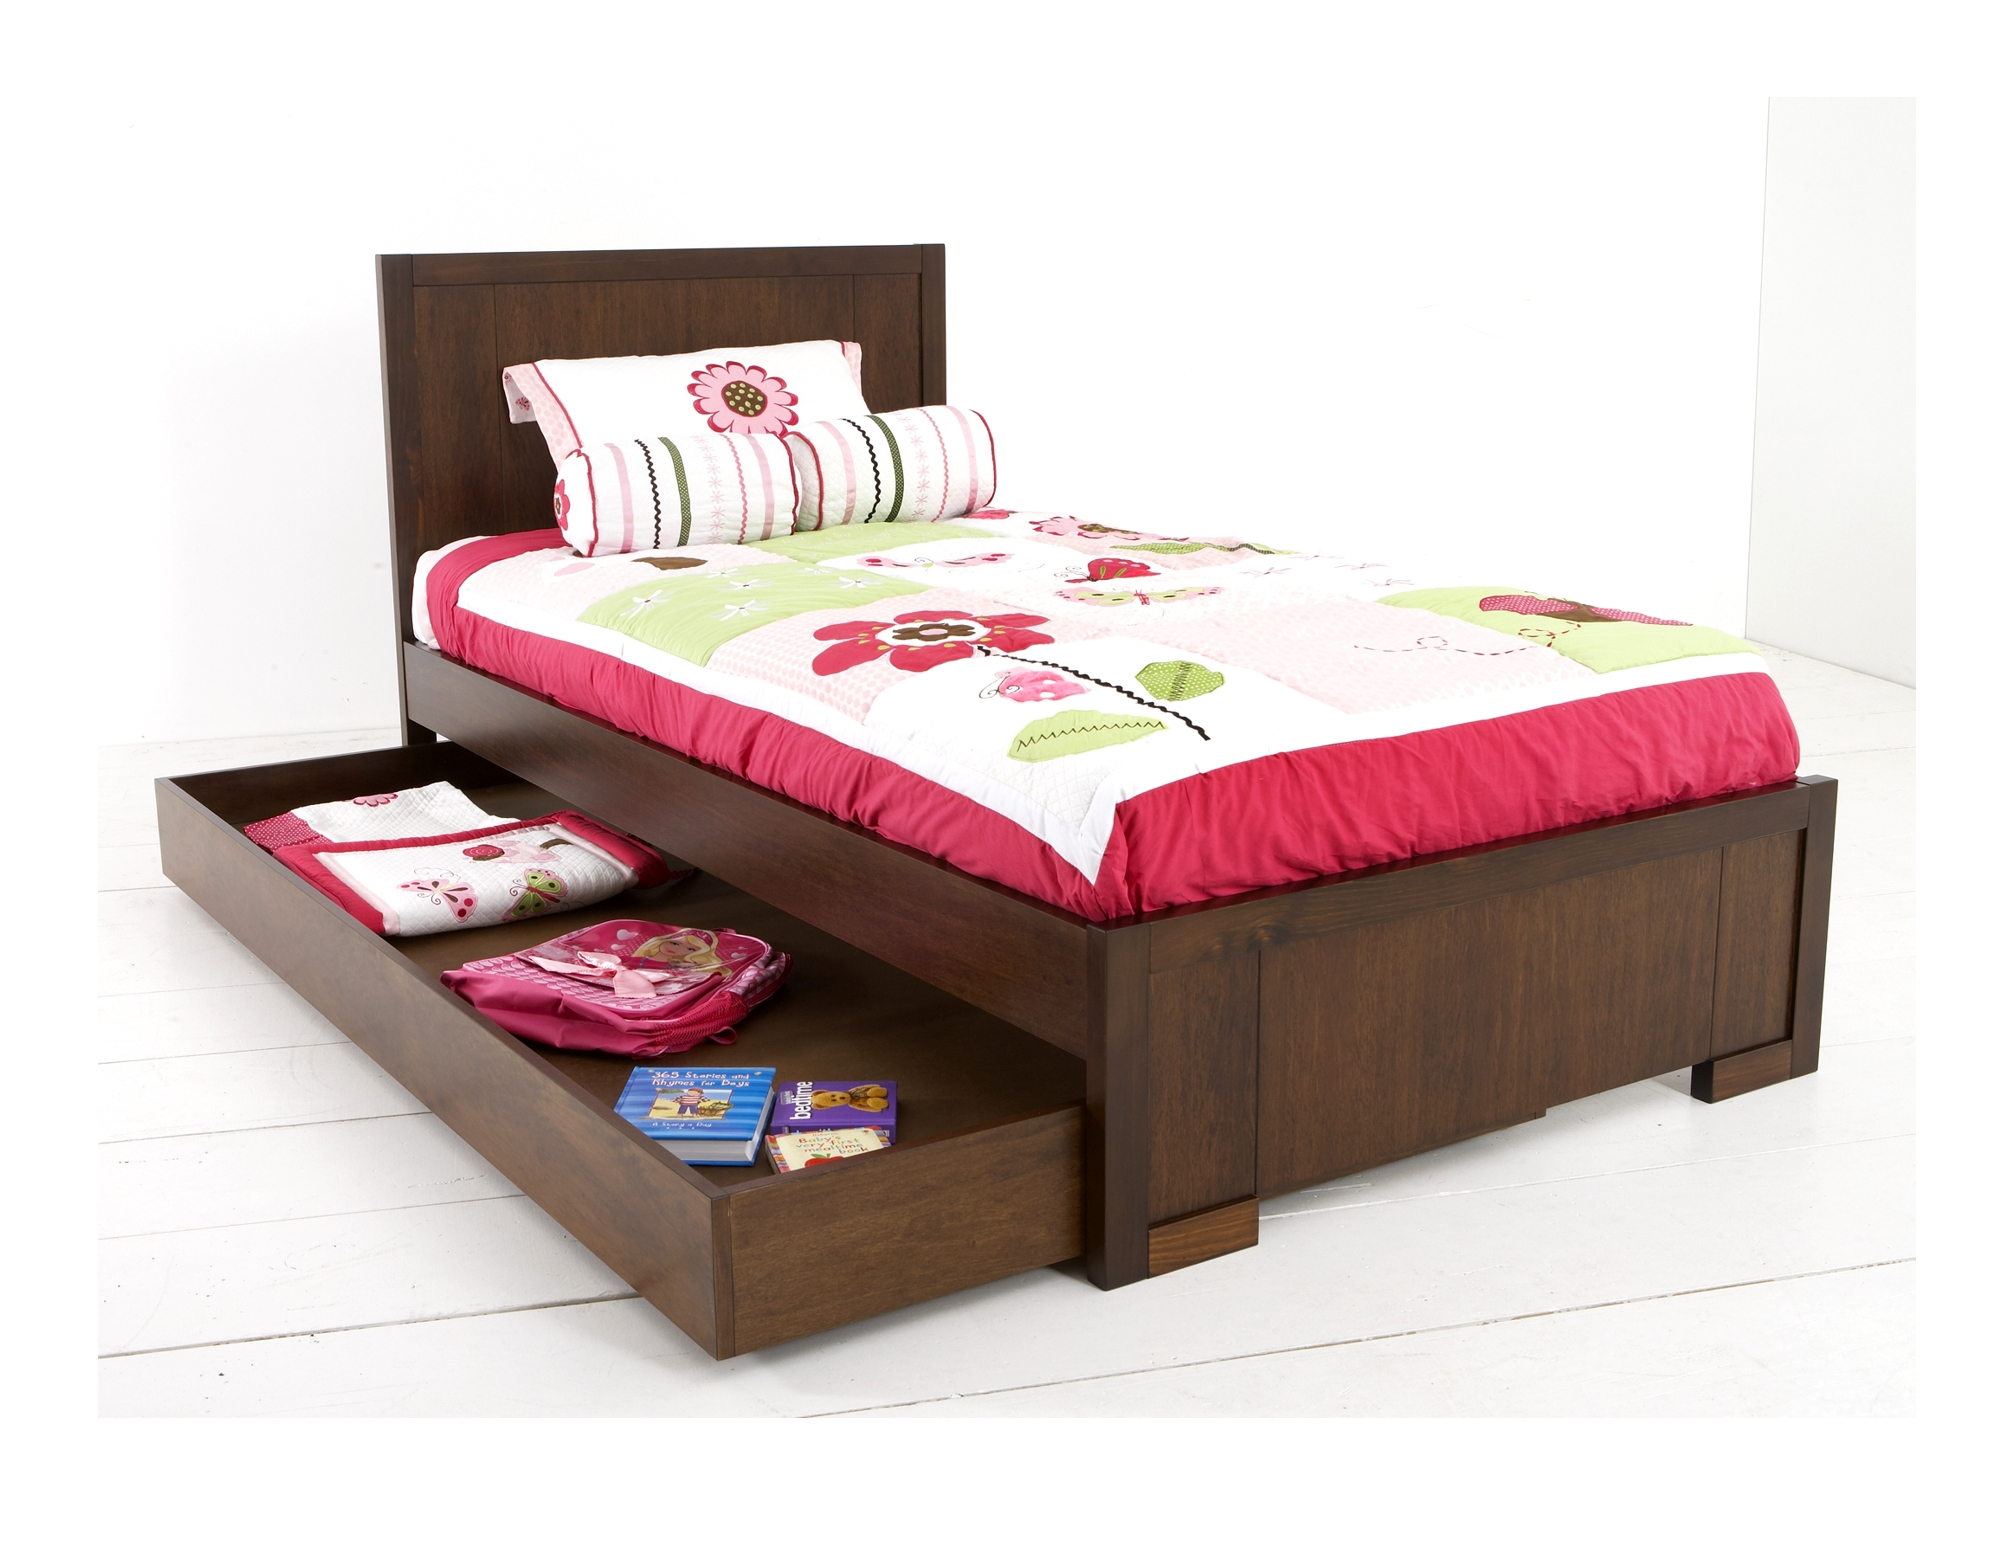 Craftmans choice furniture - Designs of bed ...